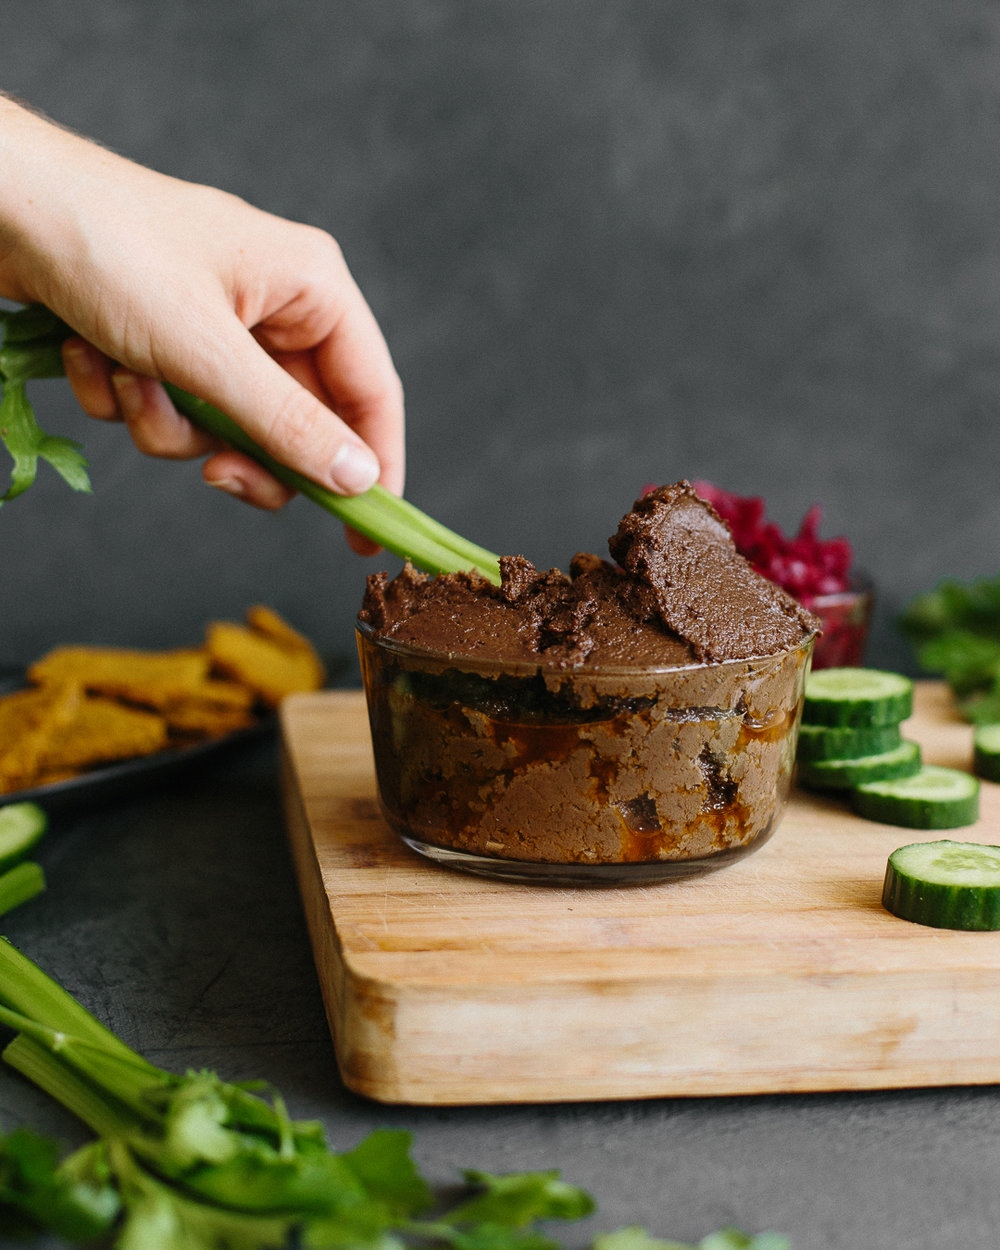 Liver_Pate2_by_Jordan_Pie_Nutritionist_Photographer-1.jpg